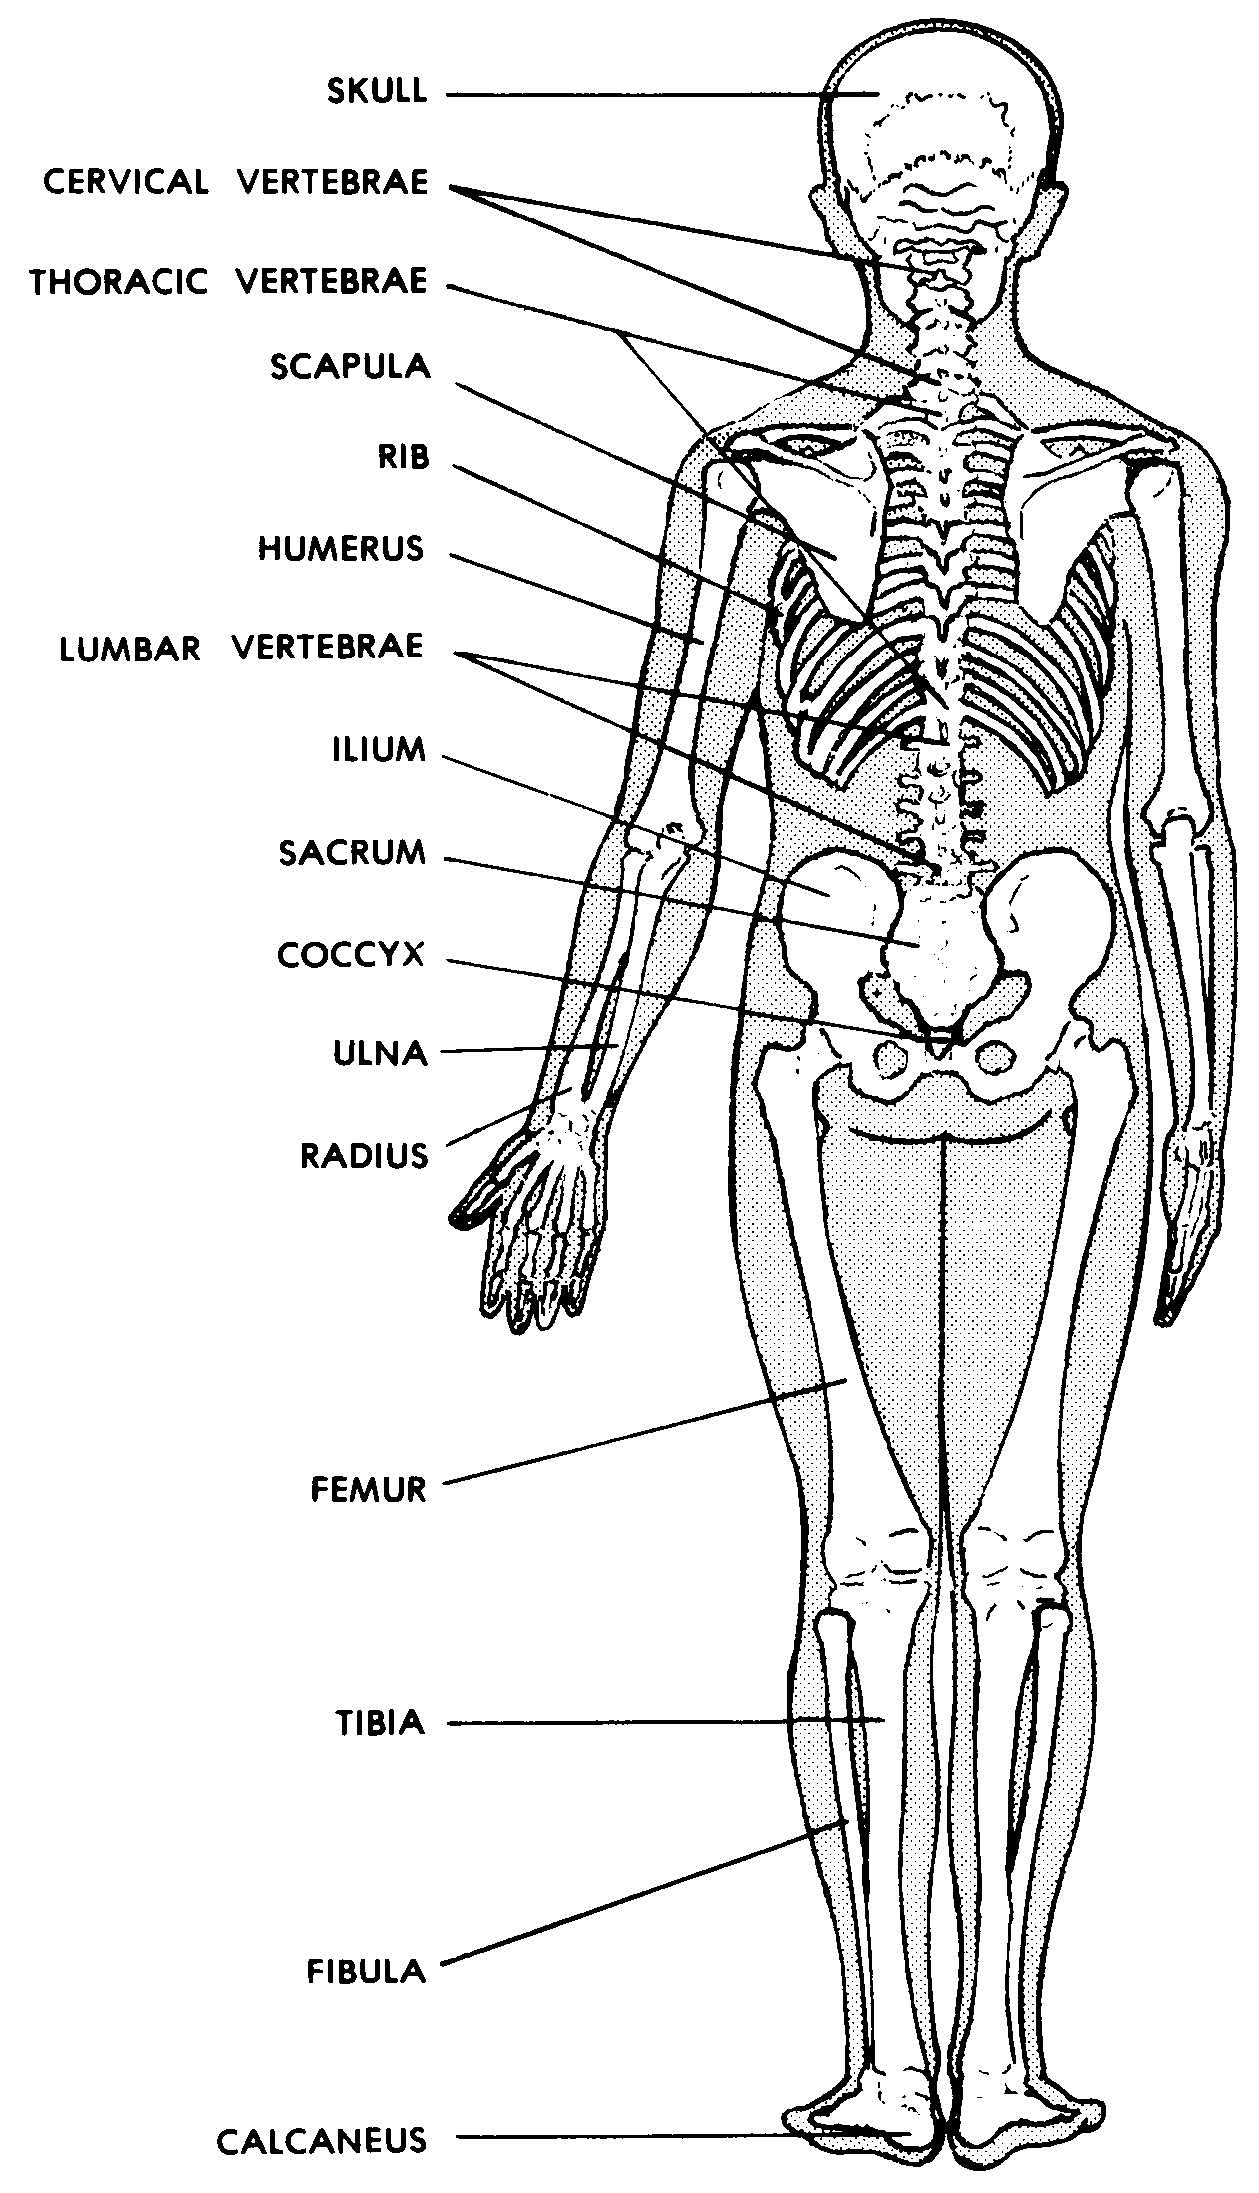 images 04. skeletal system | basic human anatomy, Skeleton